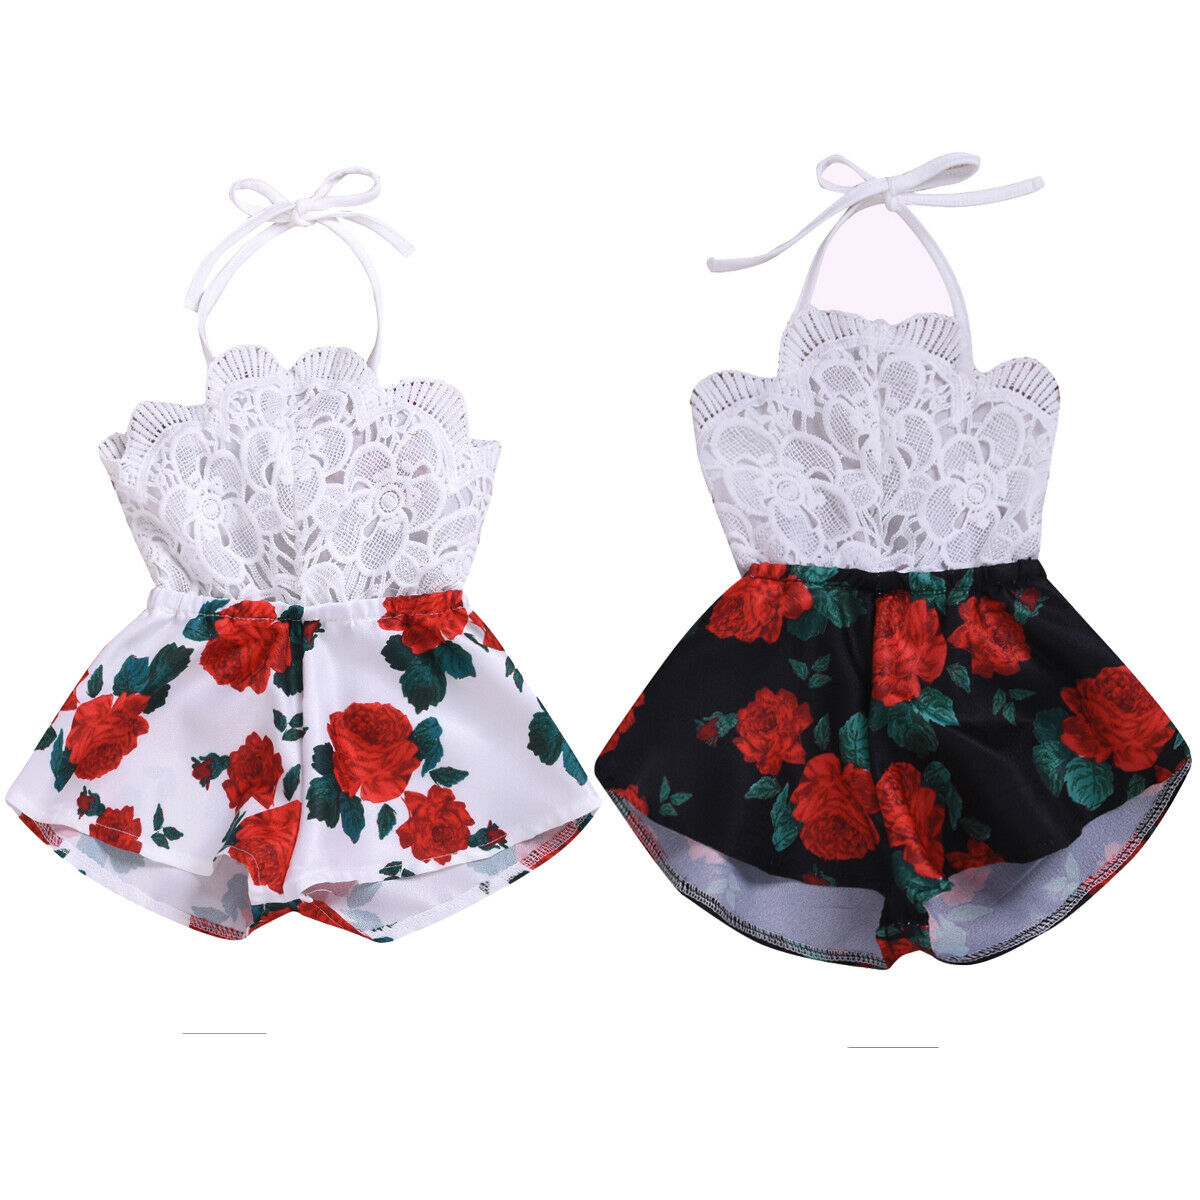 599b074d2 Summer 0-3Y Infant Baby Girl Romper Sleeveless Belt Lace Flowers Print  Jumpsuit Sunsuit Outfits Clothes ~ Best Seller June 2019